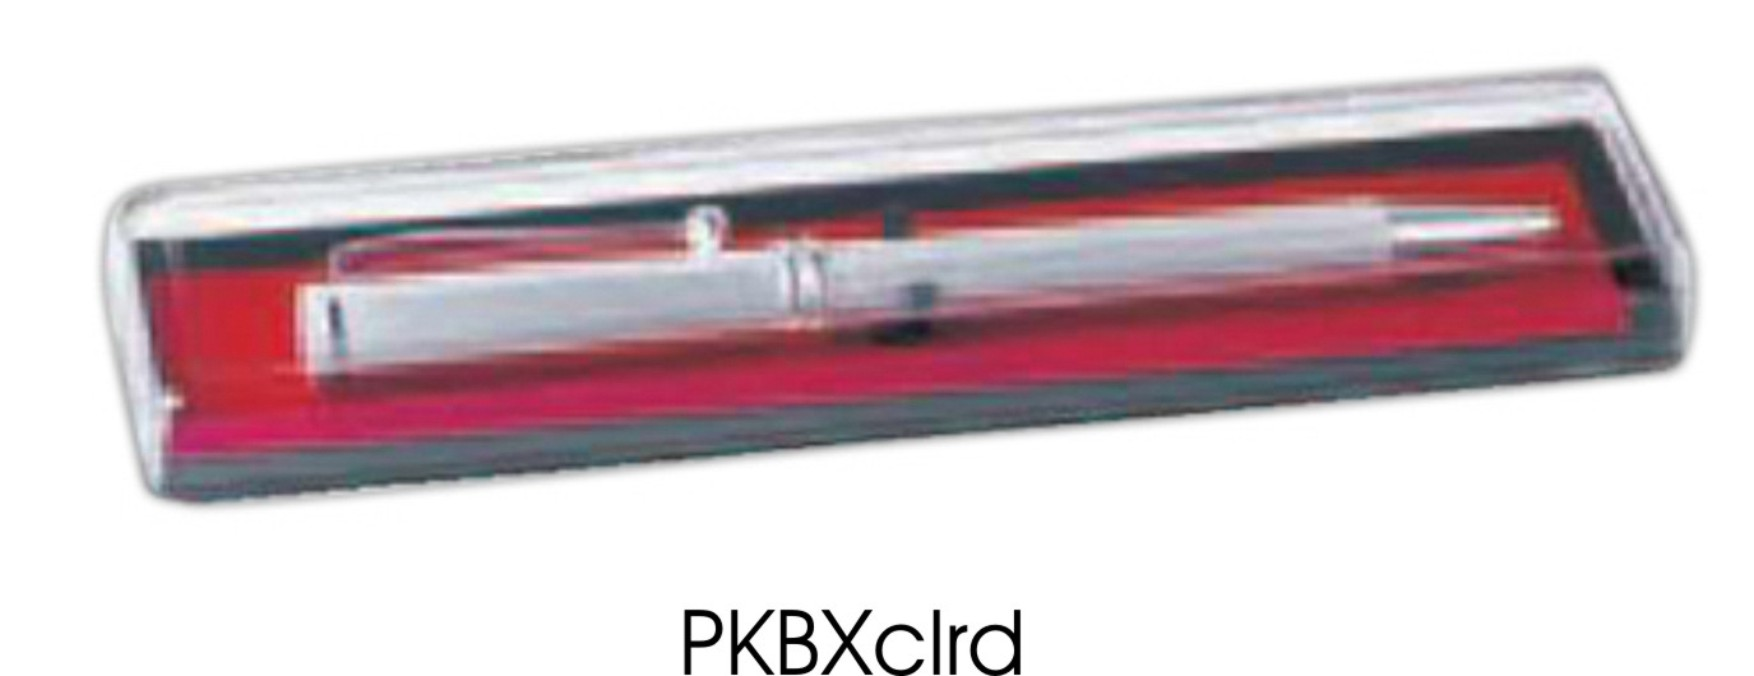 PKBXrd: Clear Top Pen Box (unprinted)